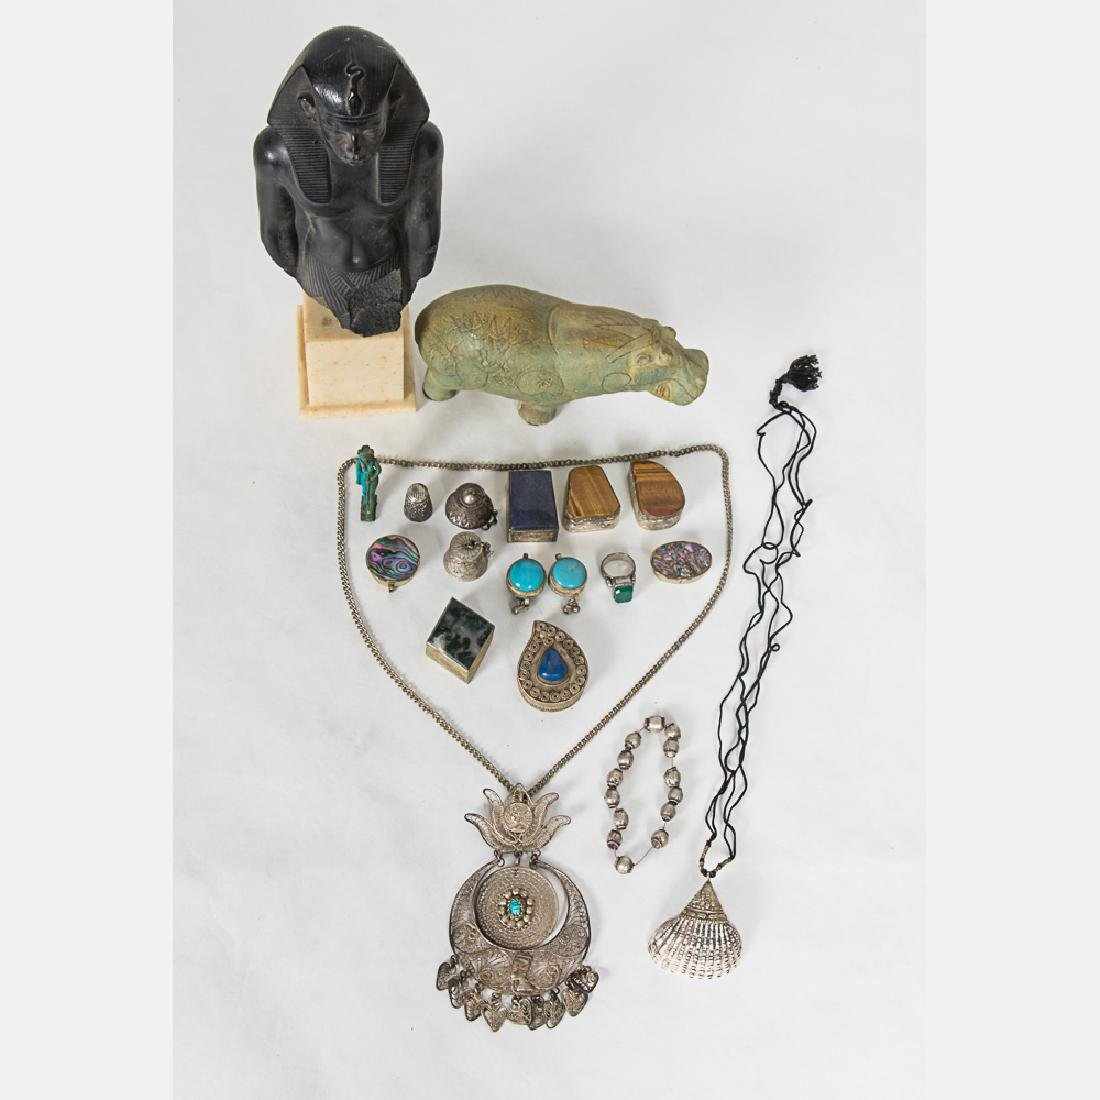 A Collection of Egyptian and Middle Eastern Decorative